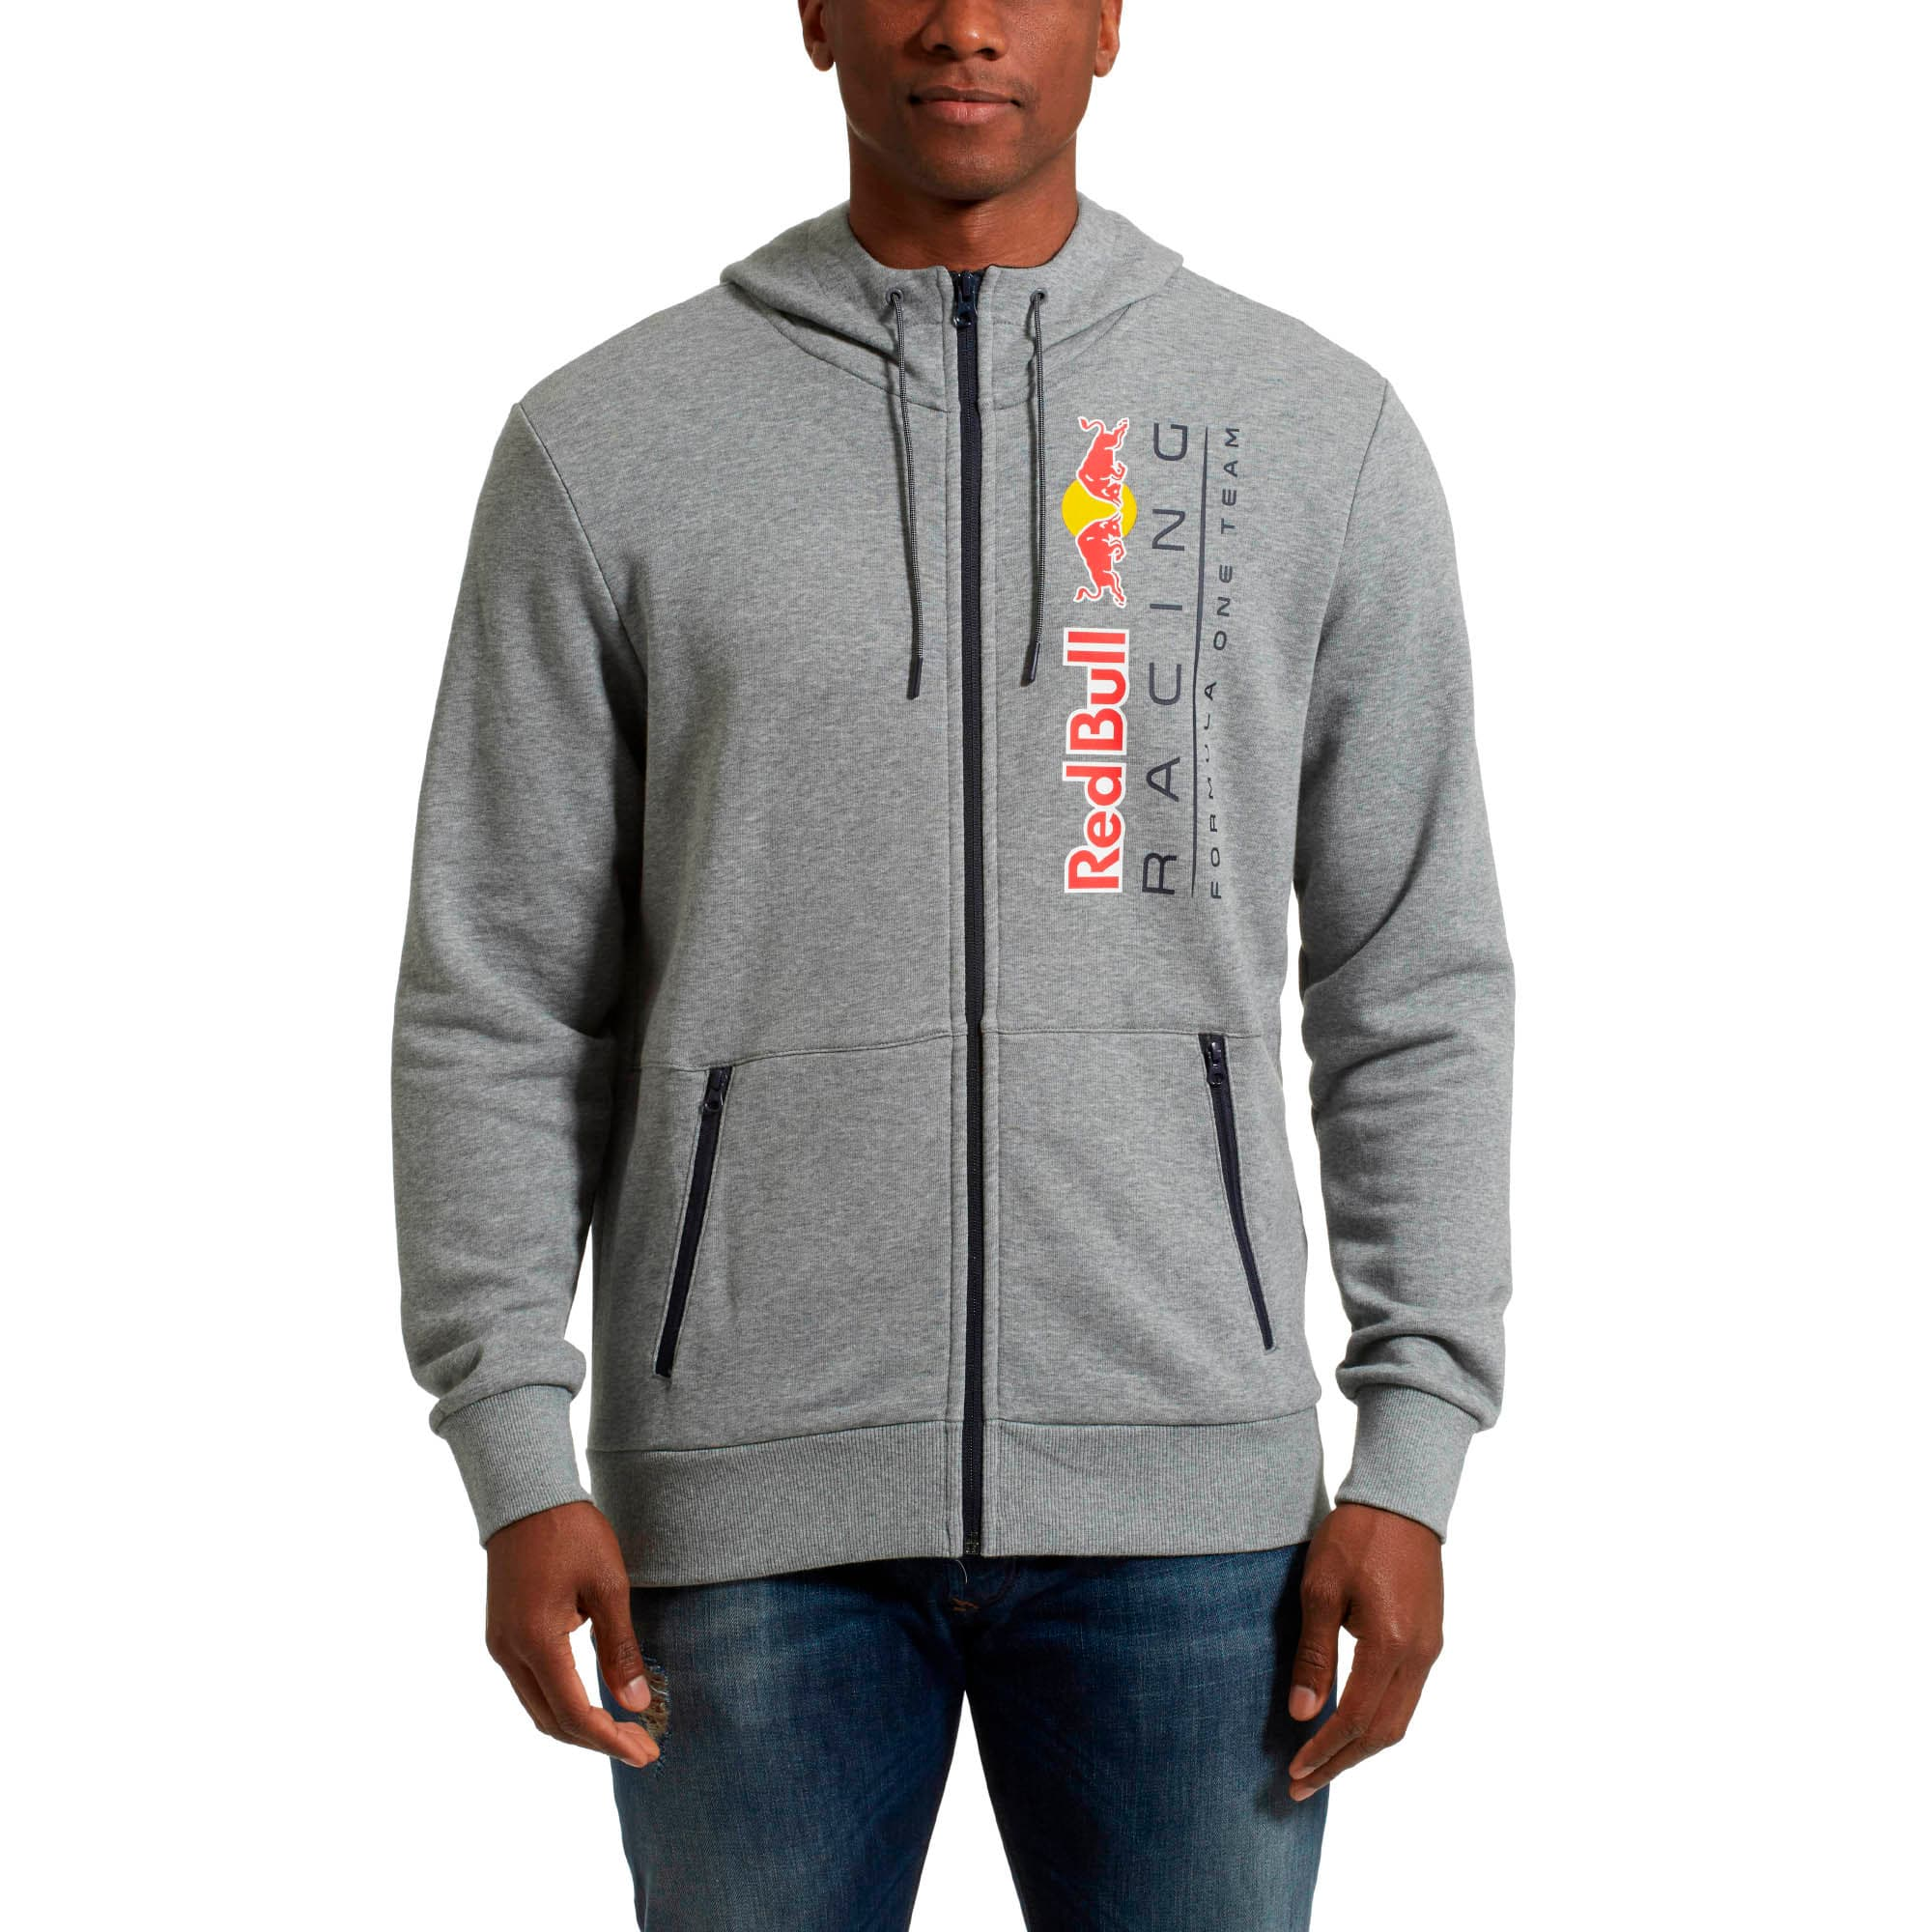 Thumbnail 1 of Red Bull Racing Lifestyle Men's Hooded Sweat Jacket, Medium Gray Heather - 1, medium